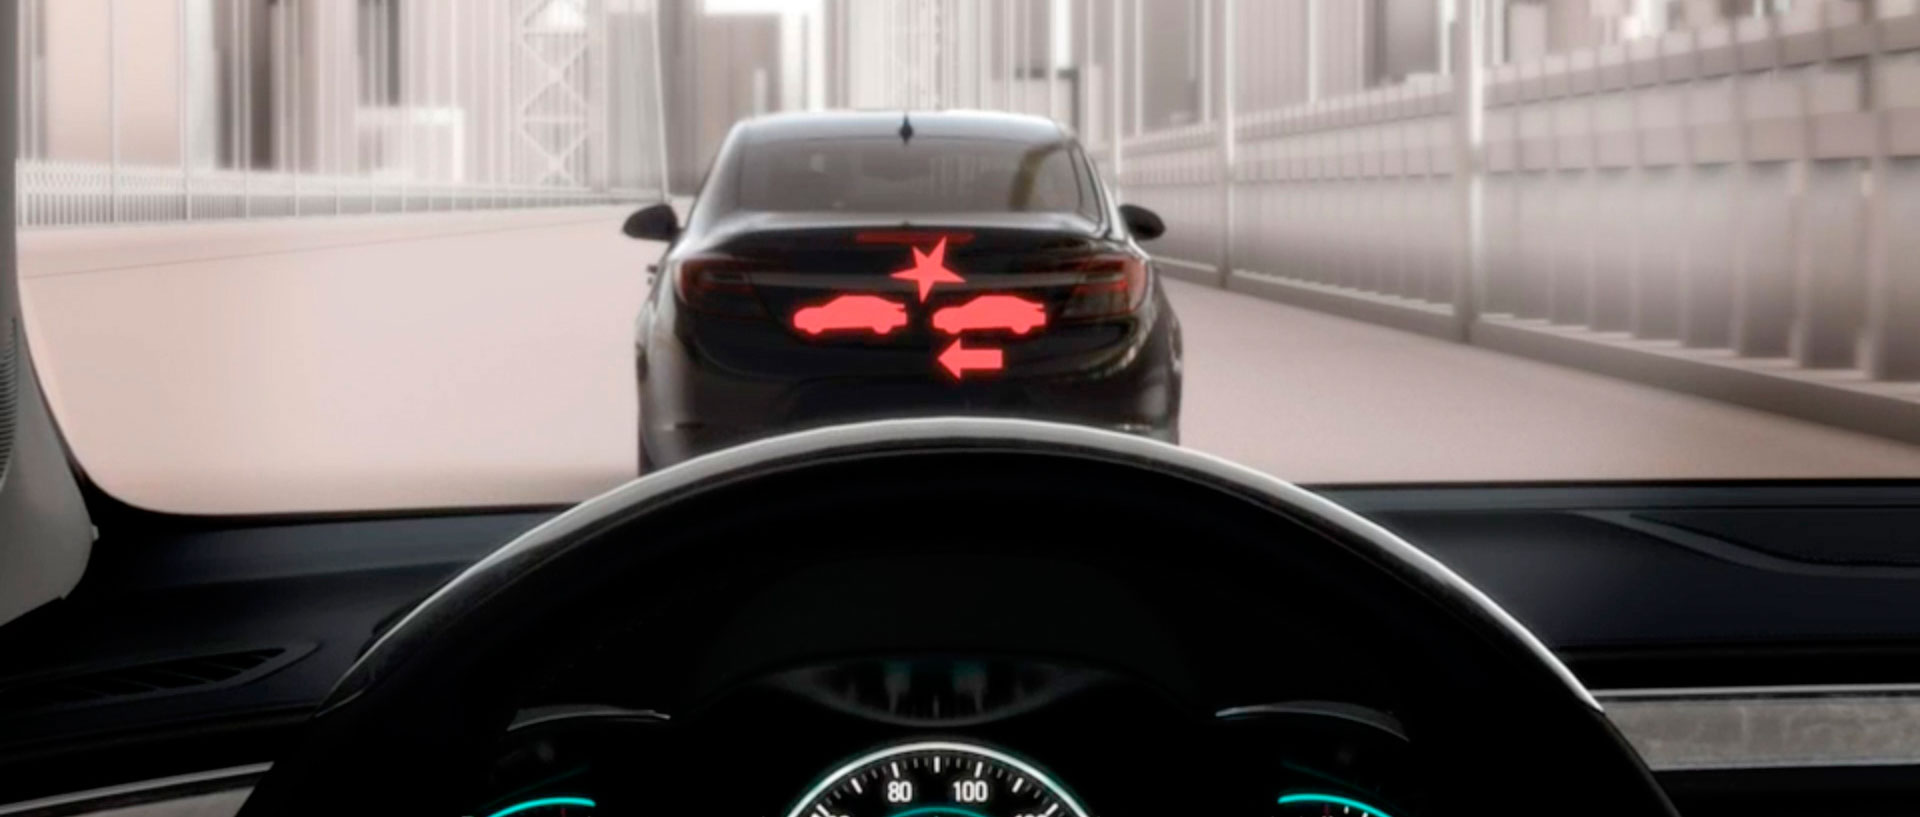 Forward Collision Warning With Braking To Become Standard